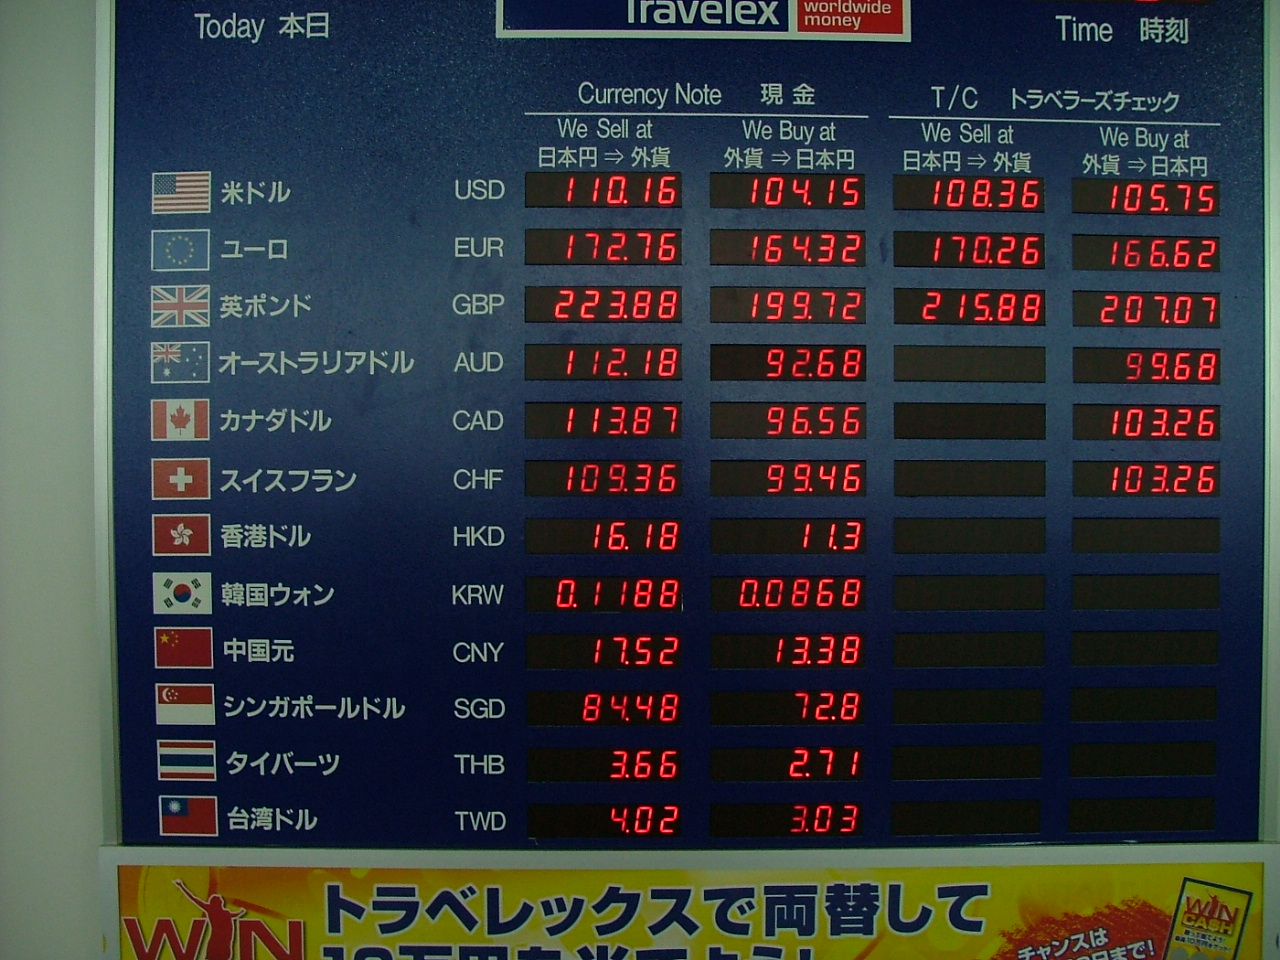 bitcoin price, exchange rate, floating exchange rate, manipulated exchange rate